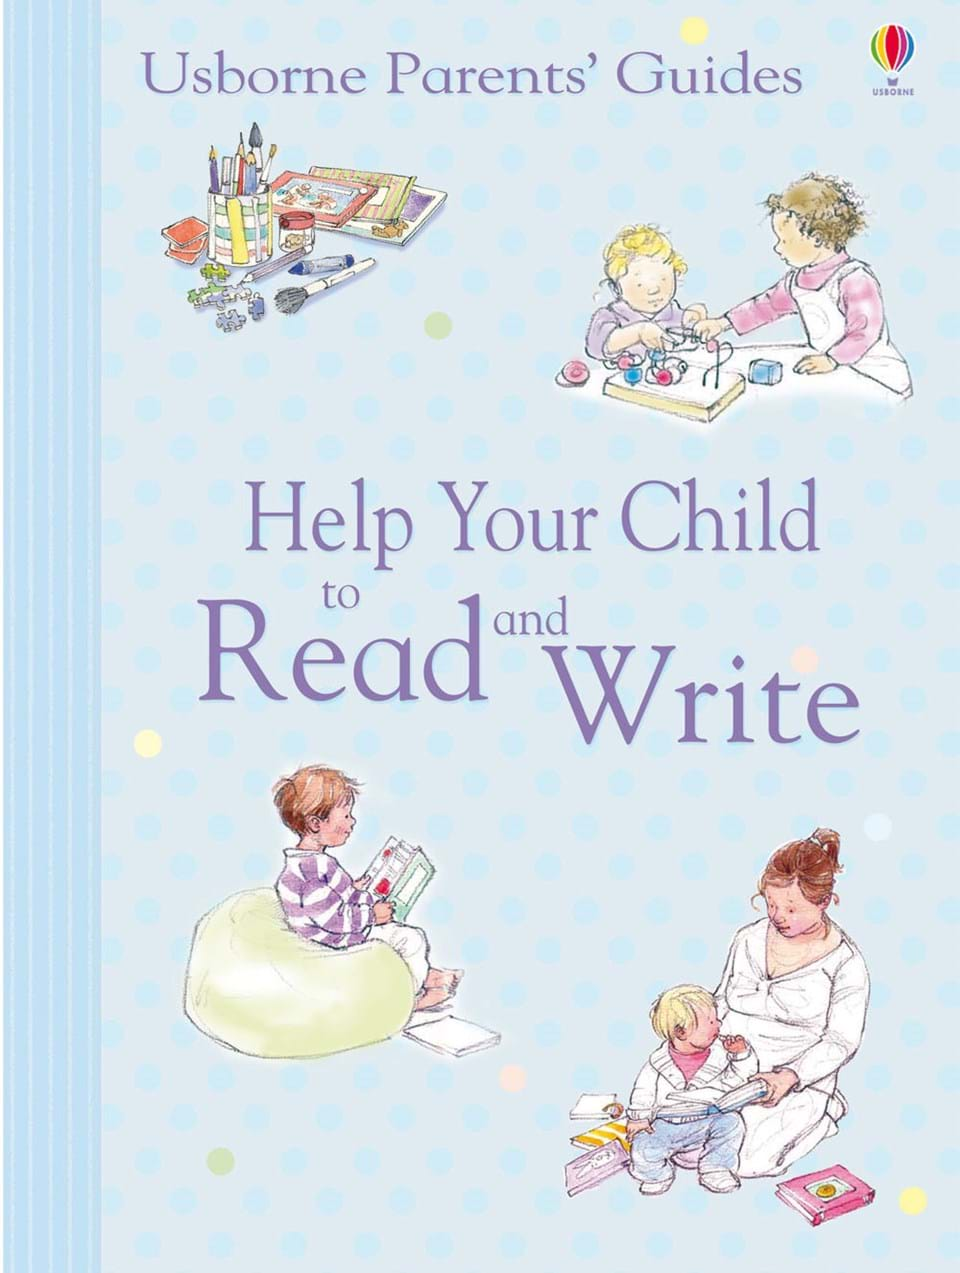 NEA - Helping Your Child Learn to Read